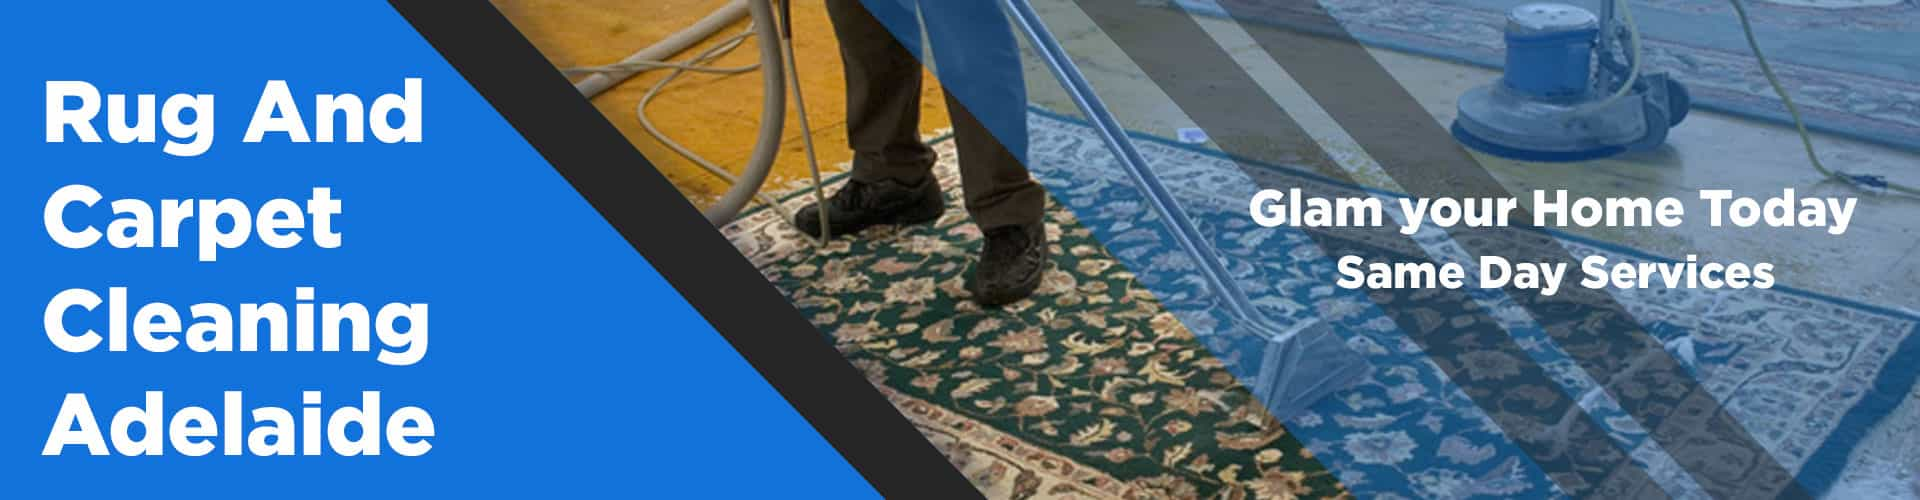 Rug And Carpet Cleaning Adelaide